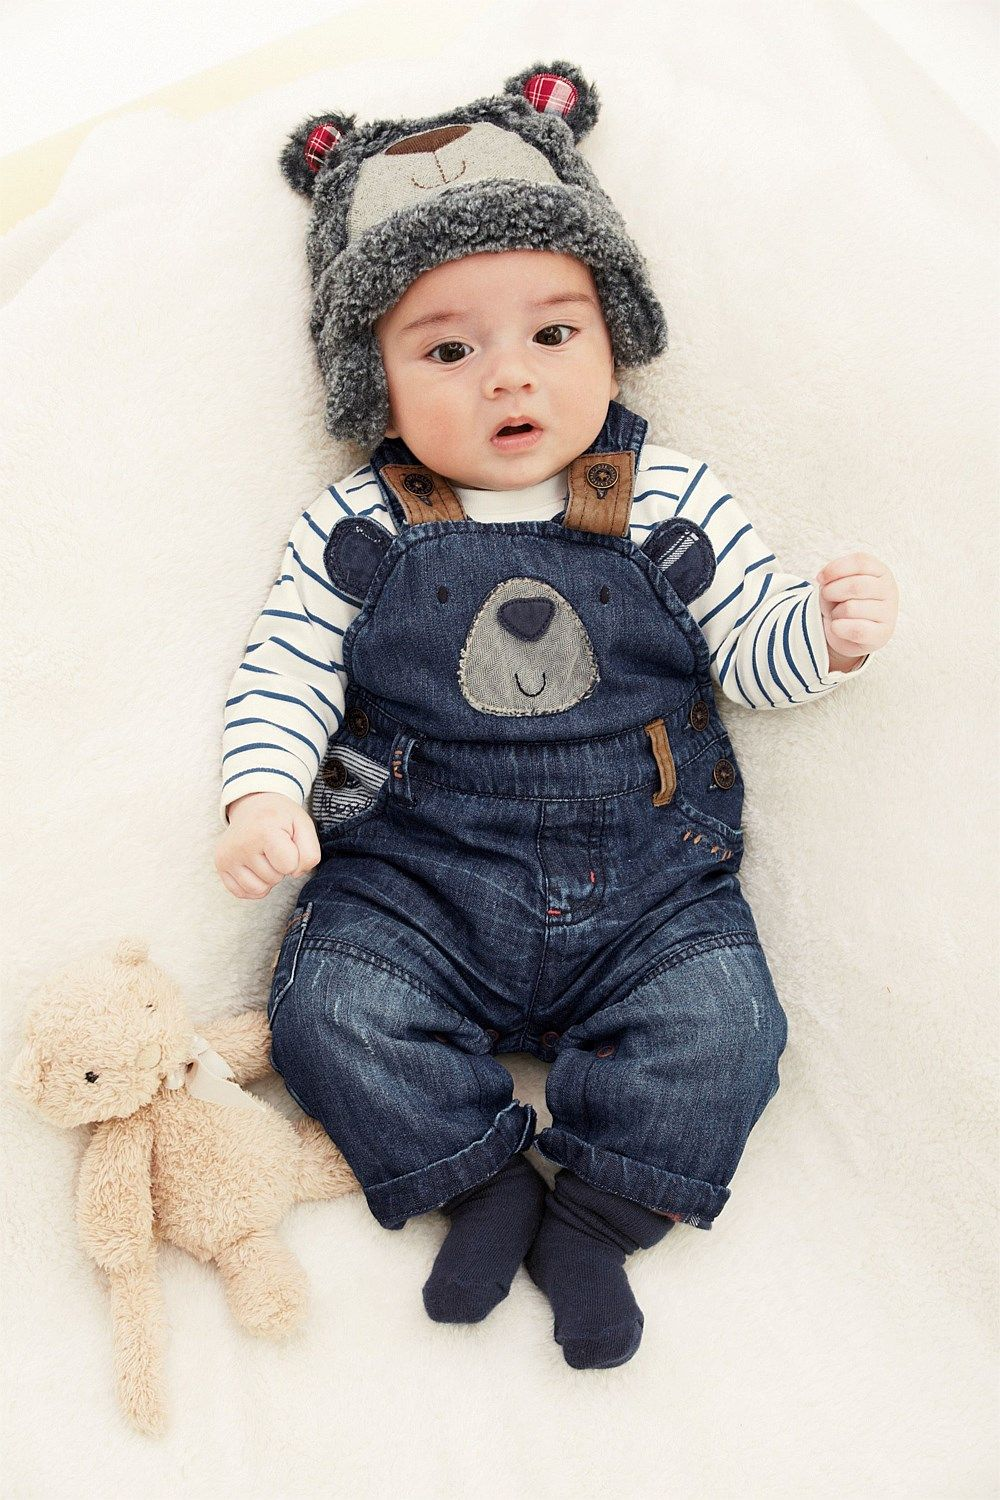 Clothes, Shoes & Accessories Baby The Cheapest Price Next Baby Boy Girl Denim Look Dungarees With Stars